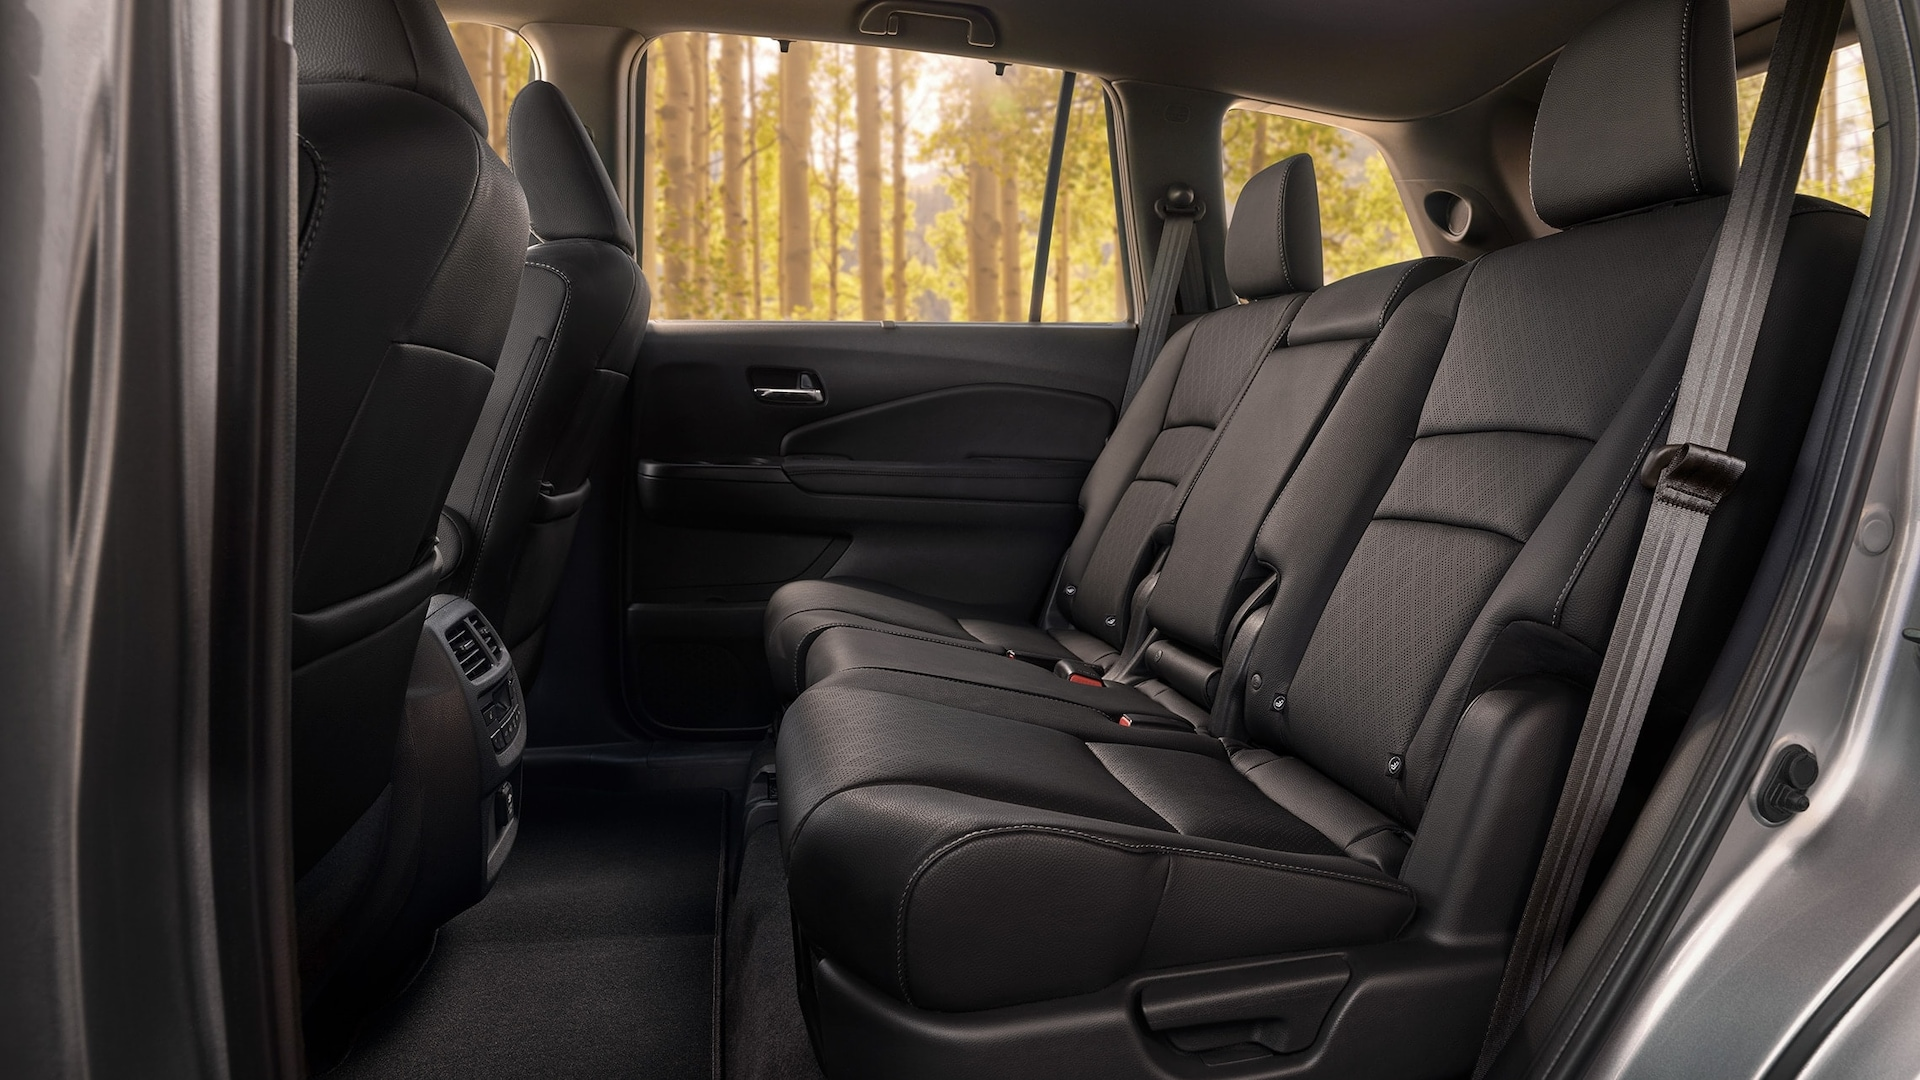 2019 Honda Passport Elite rear interior in Black Leather, displaying spacious 2nd-row seating.